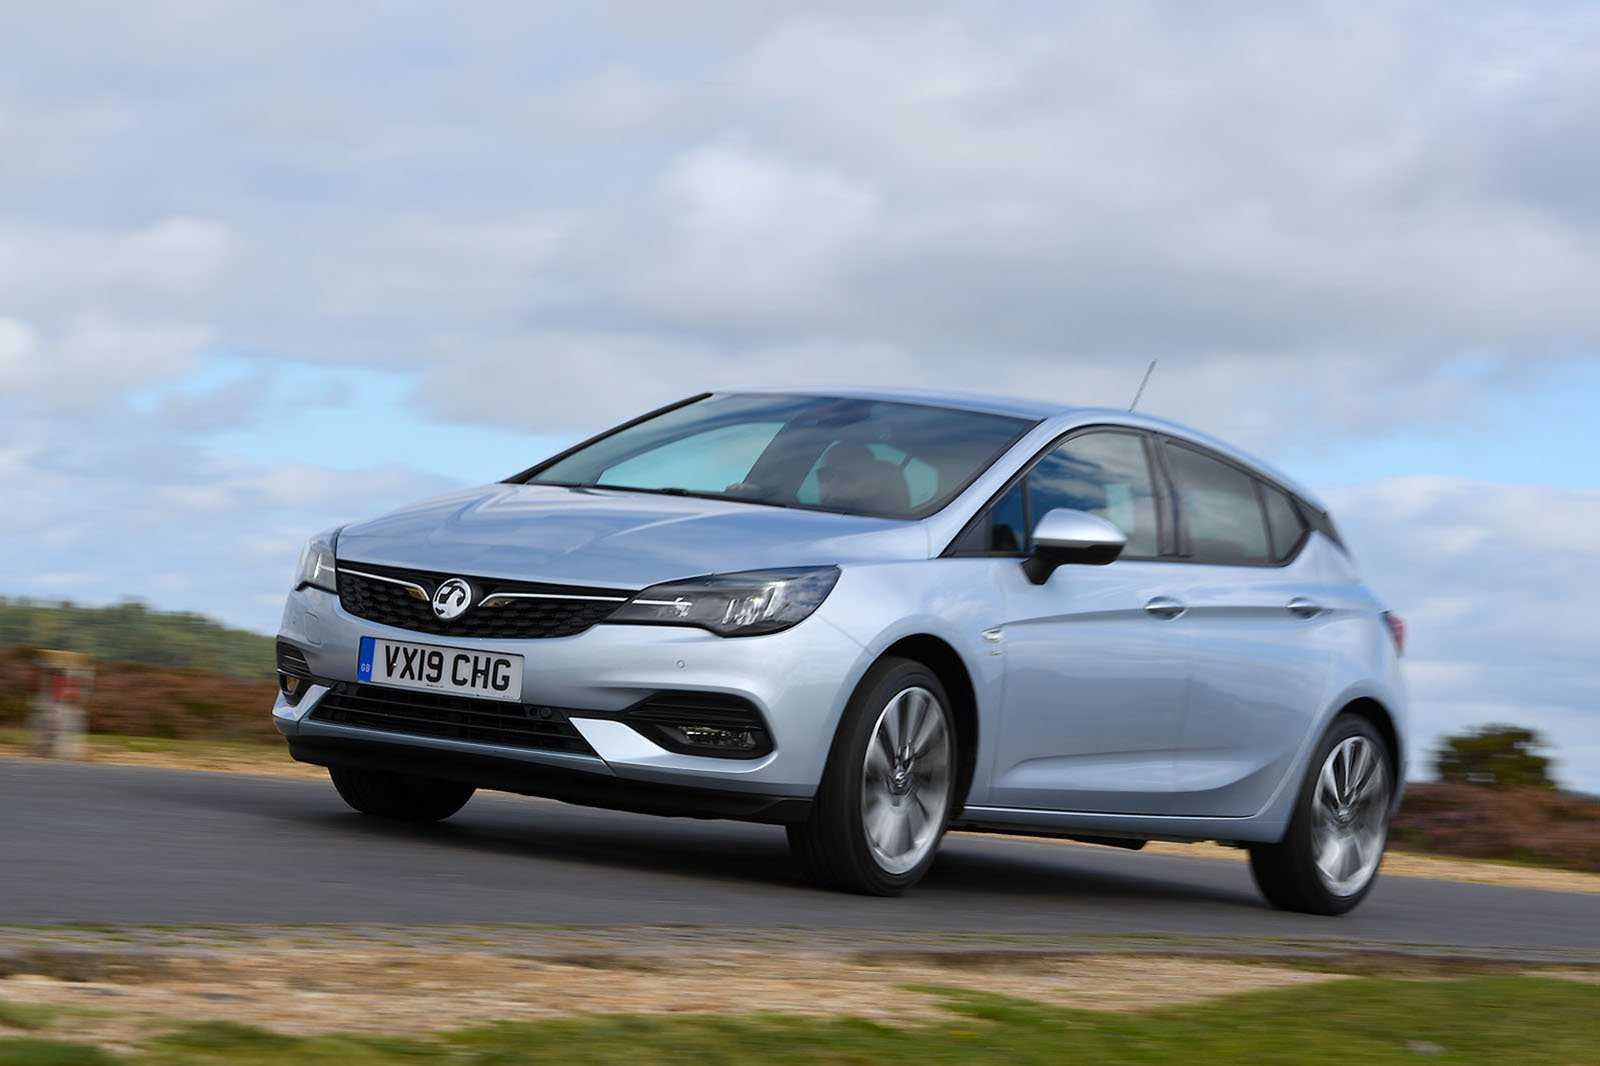 Vauxhall Astra driving